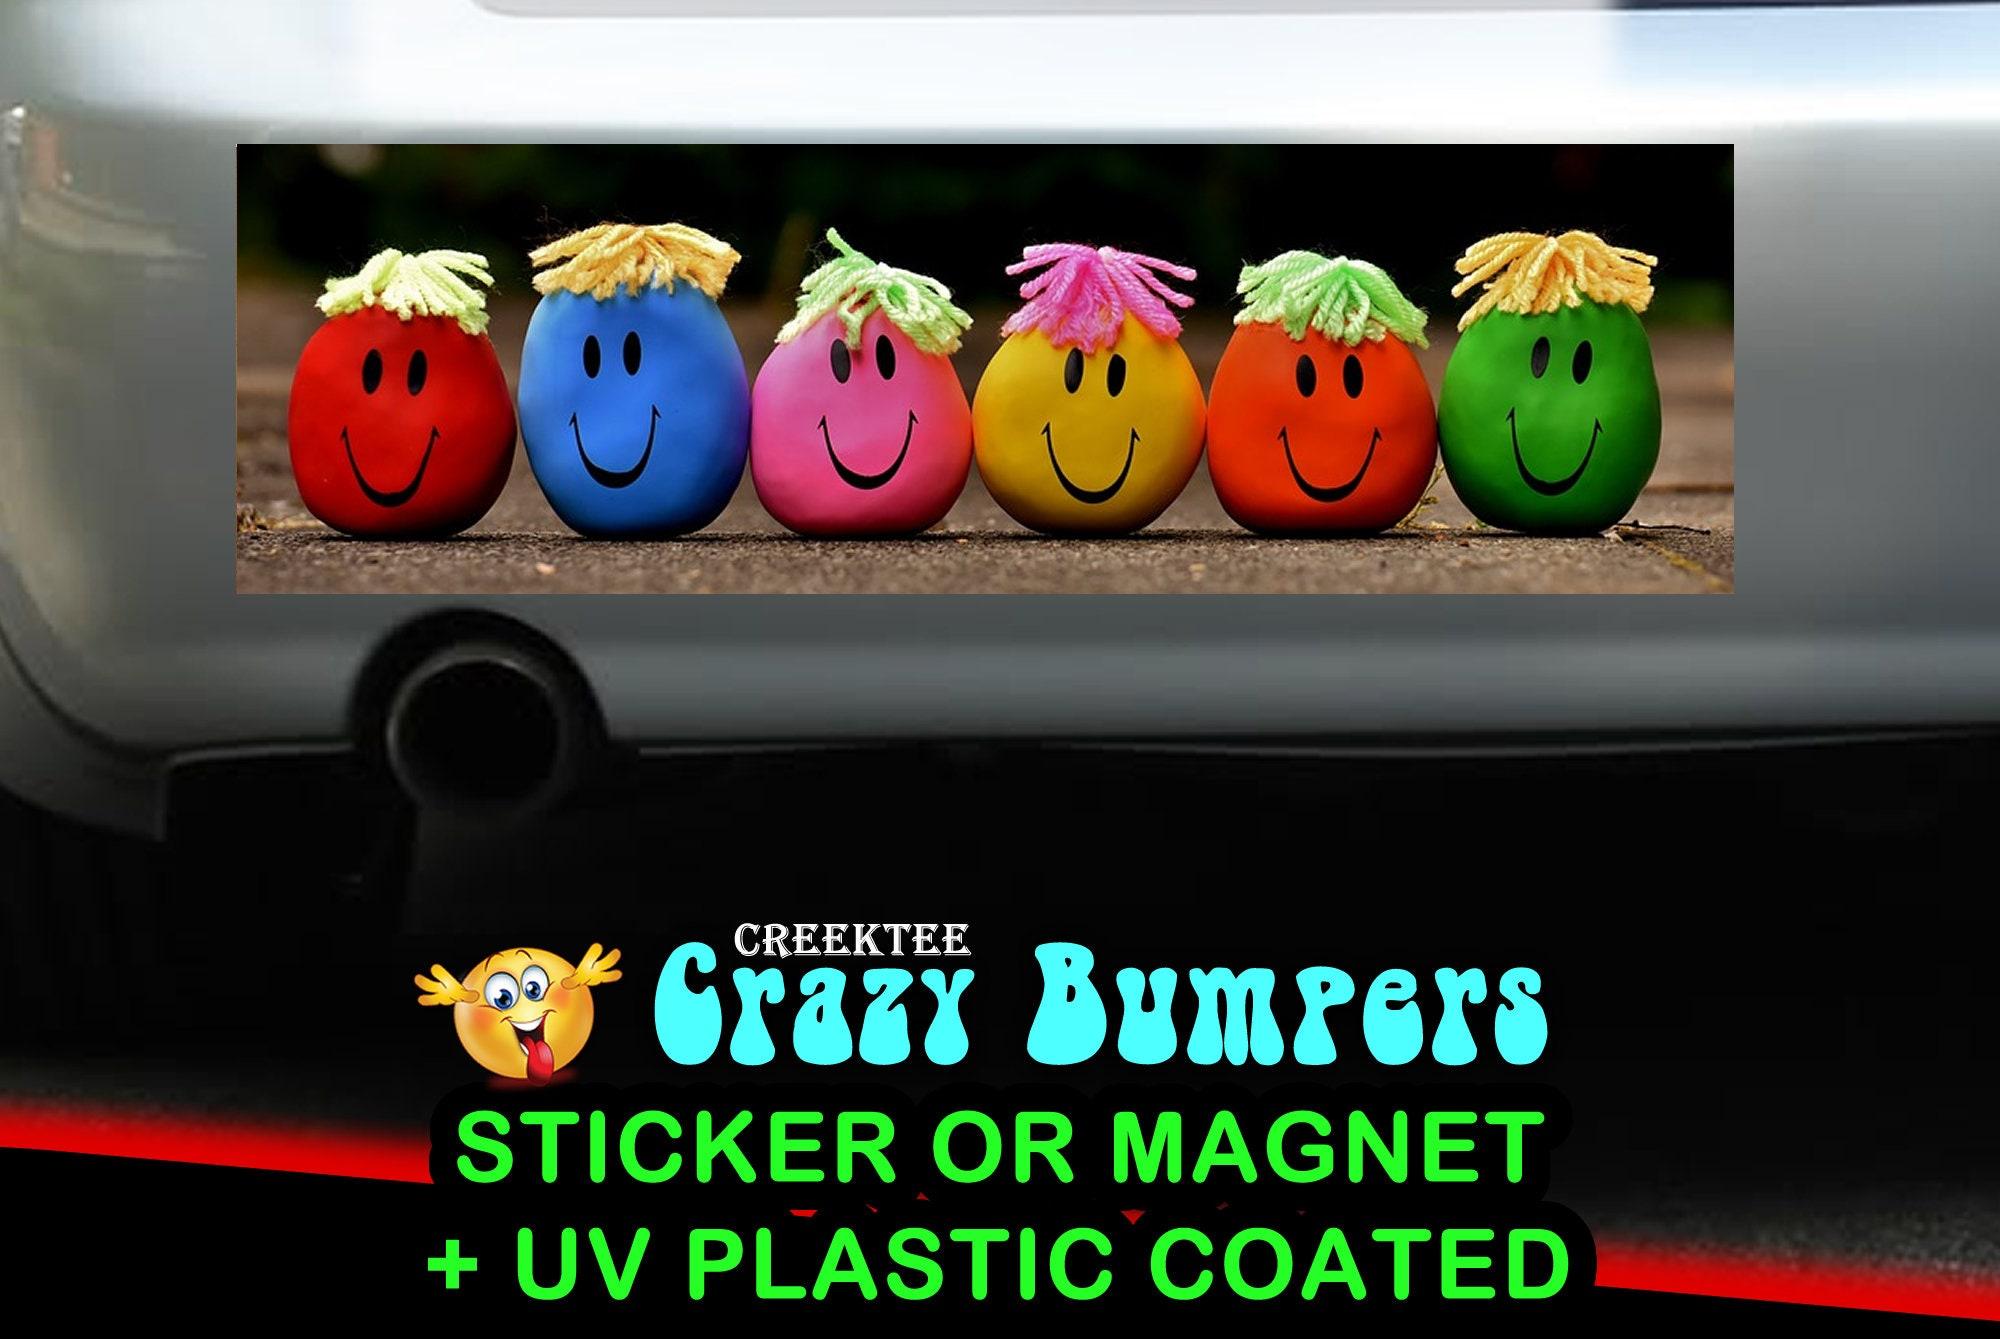 CAD$9.74 - Laughing Emojis 10 x 3 Bumper Sticker or Magnetic Bumper Sticker Available